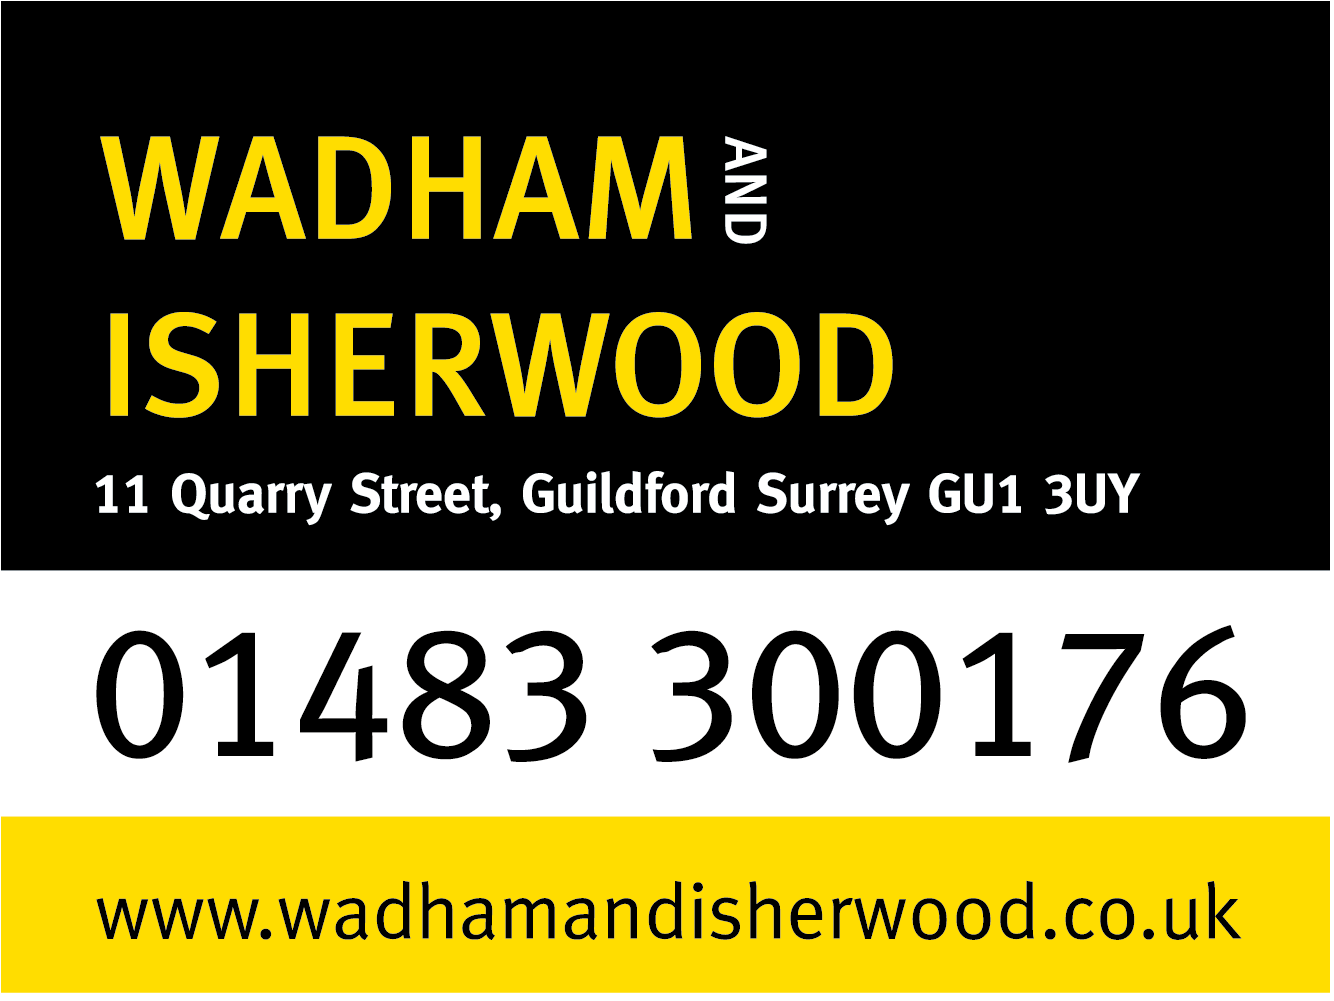 wadham and isherwood logo block